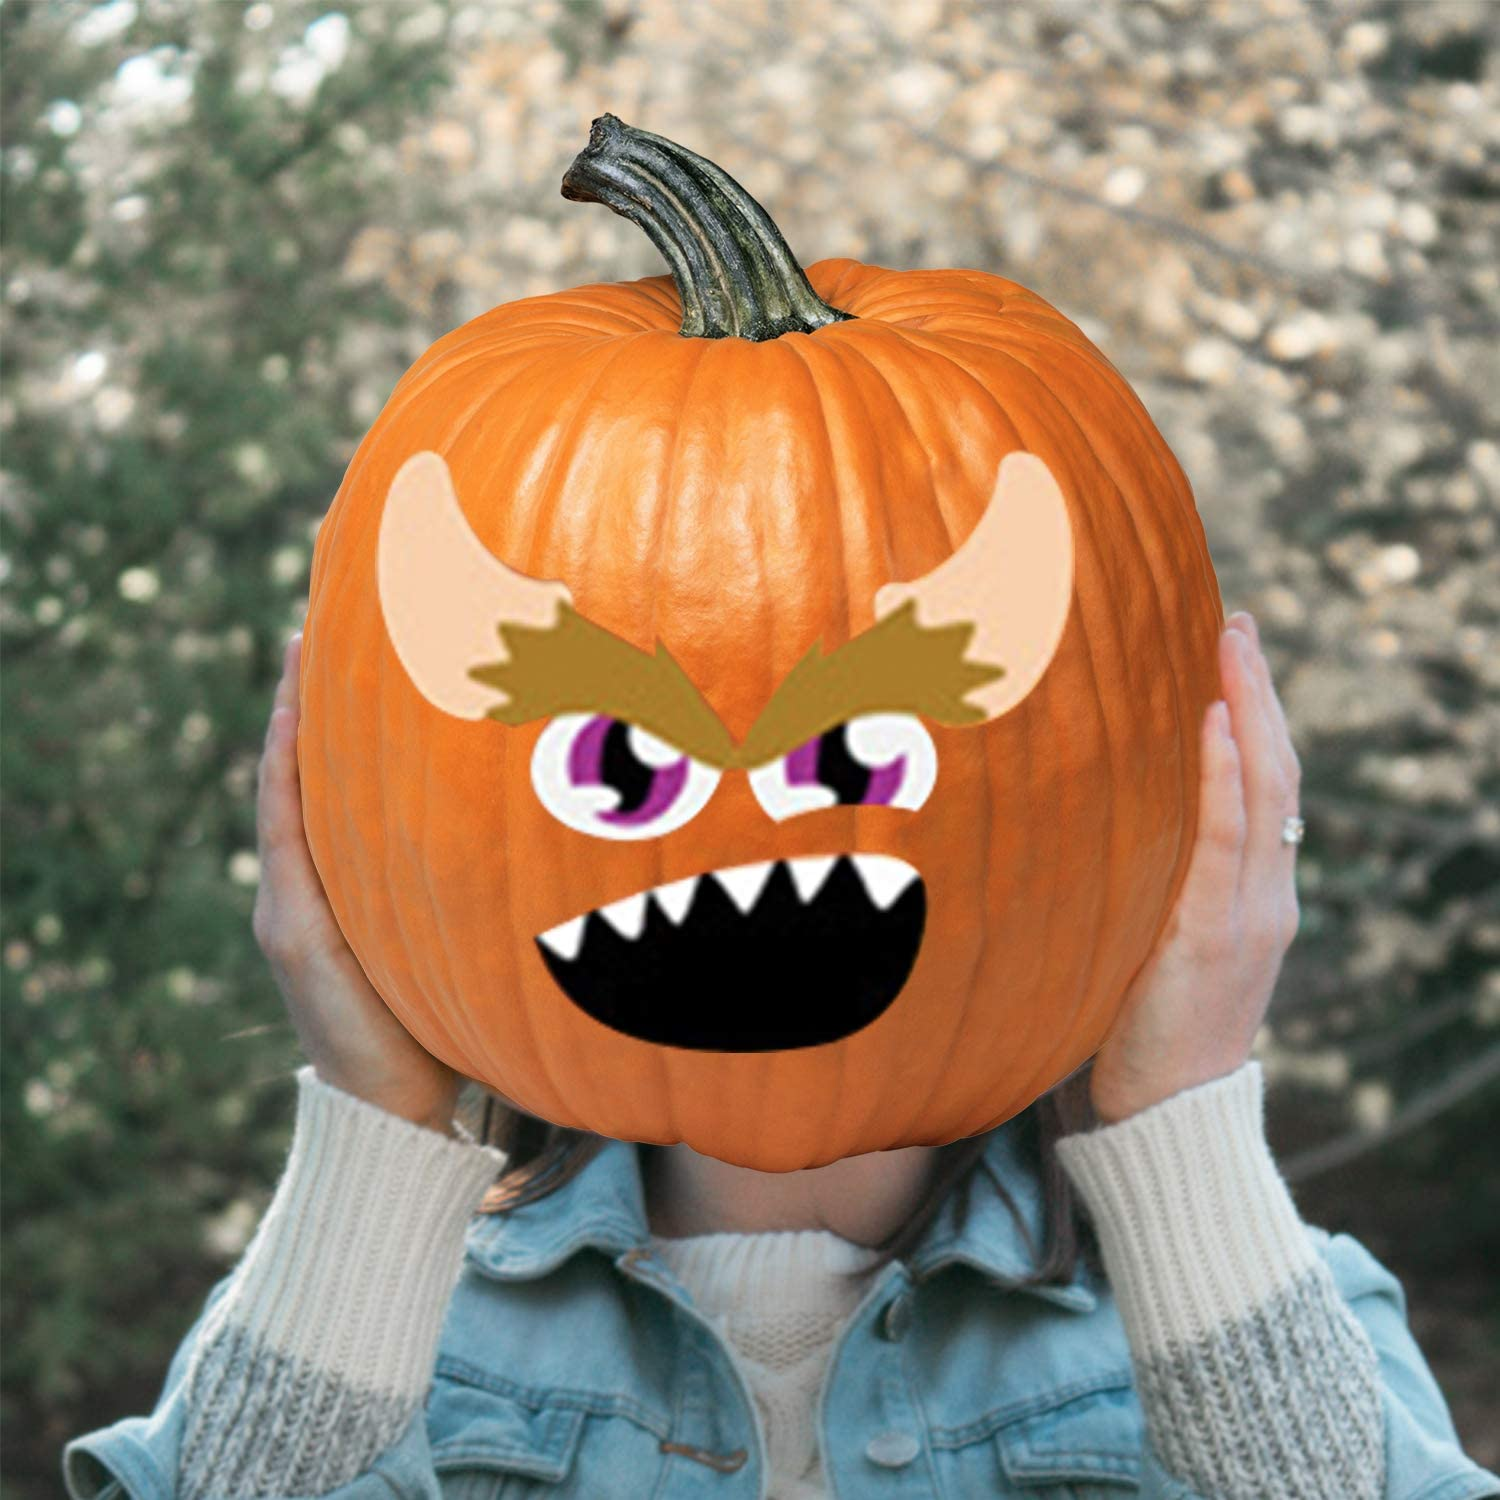 Halloween Pumpkin Stickers Coobbar 24 Pieces Funny and Classic Pumpkin Expressions Stickers for Pumpkins and Squashes,DIY Jack-O-Lantern Face Decals for Halloween Party Decoration